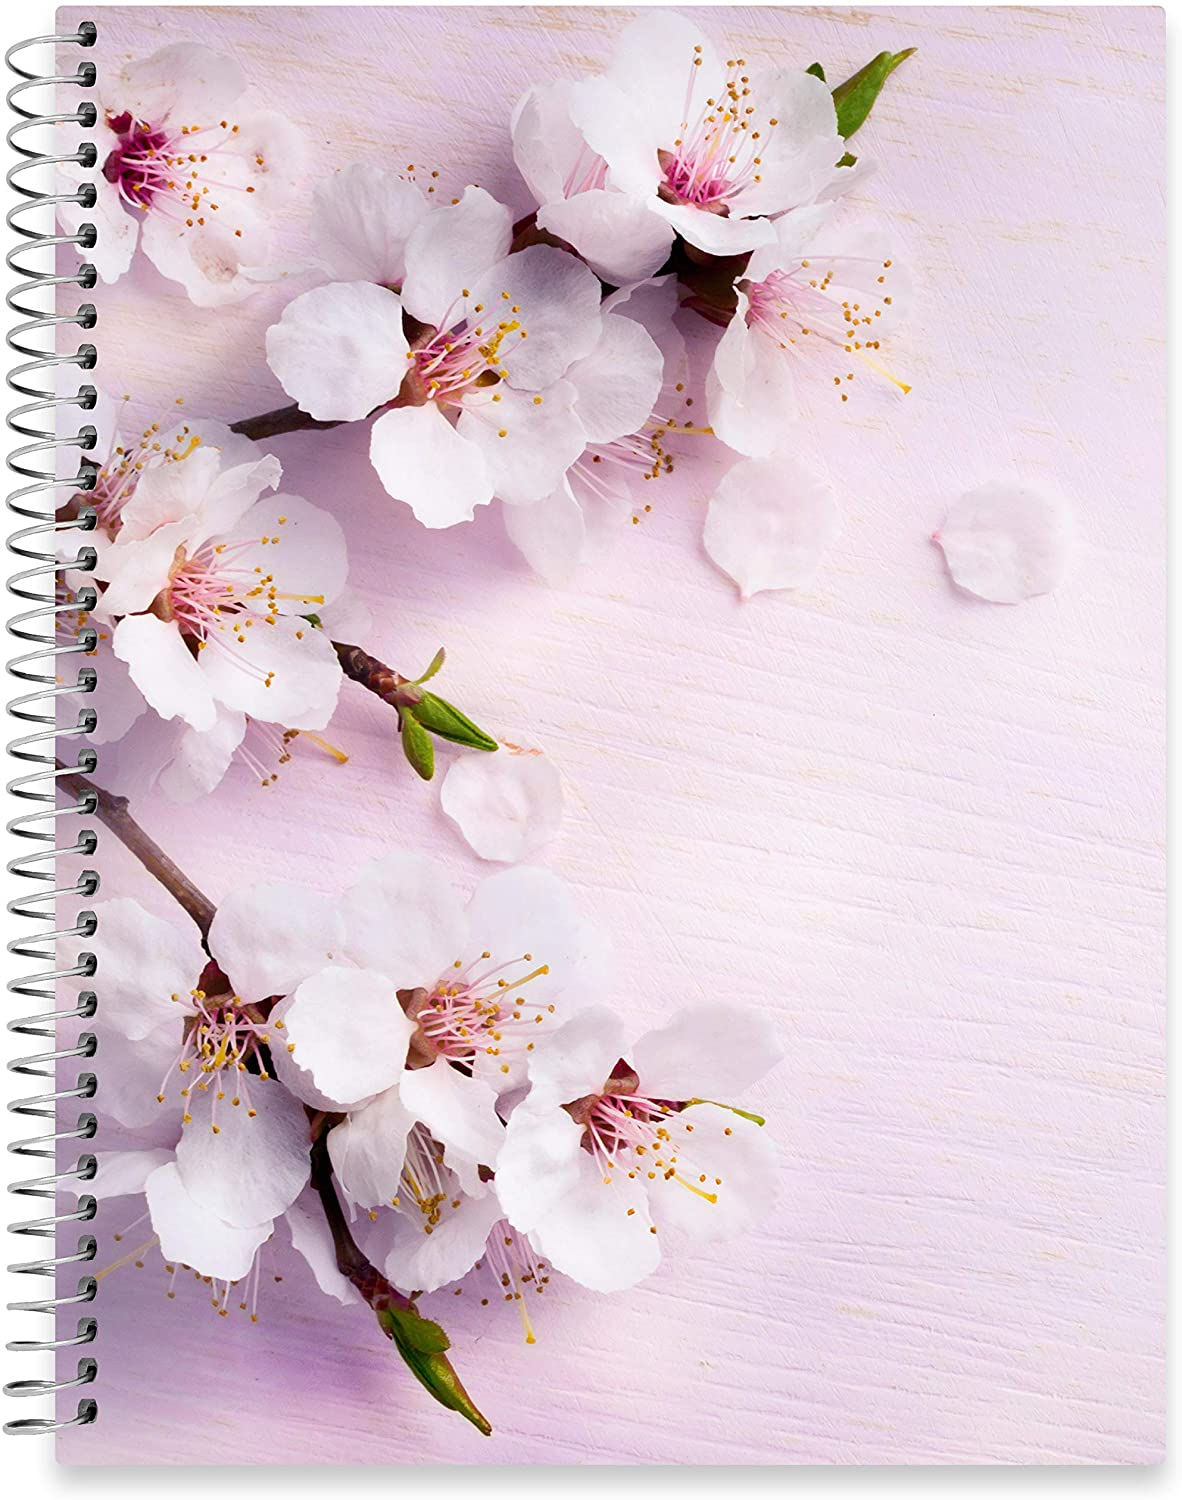 "July 2020 - June 2021 Softcover Planner - 8.5"" x 11"" - Cherry Blossoms Cover"